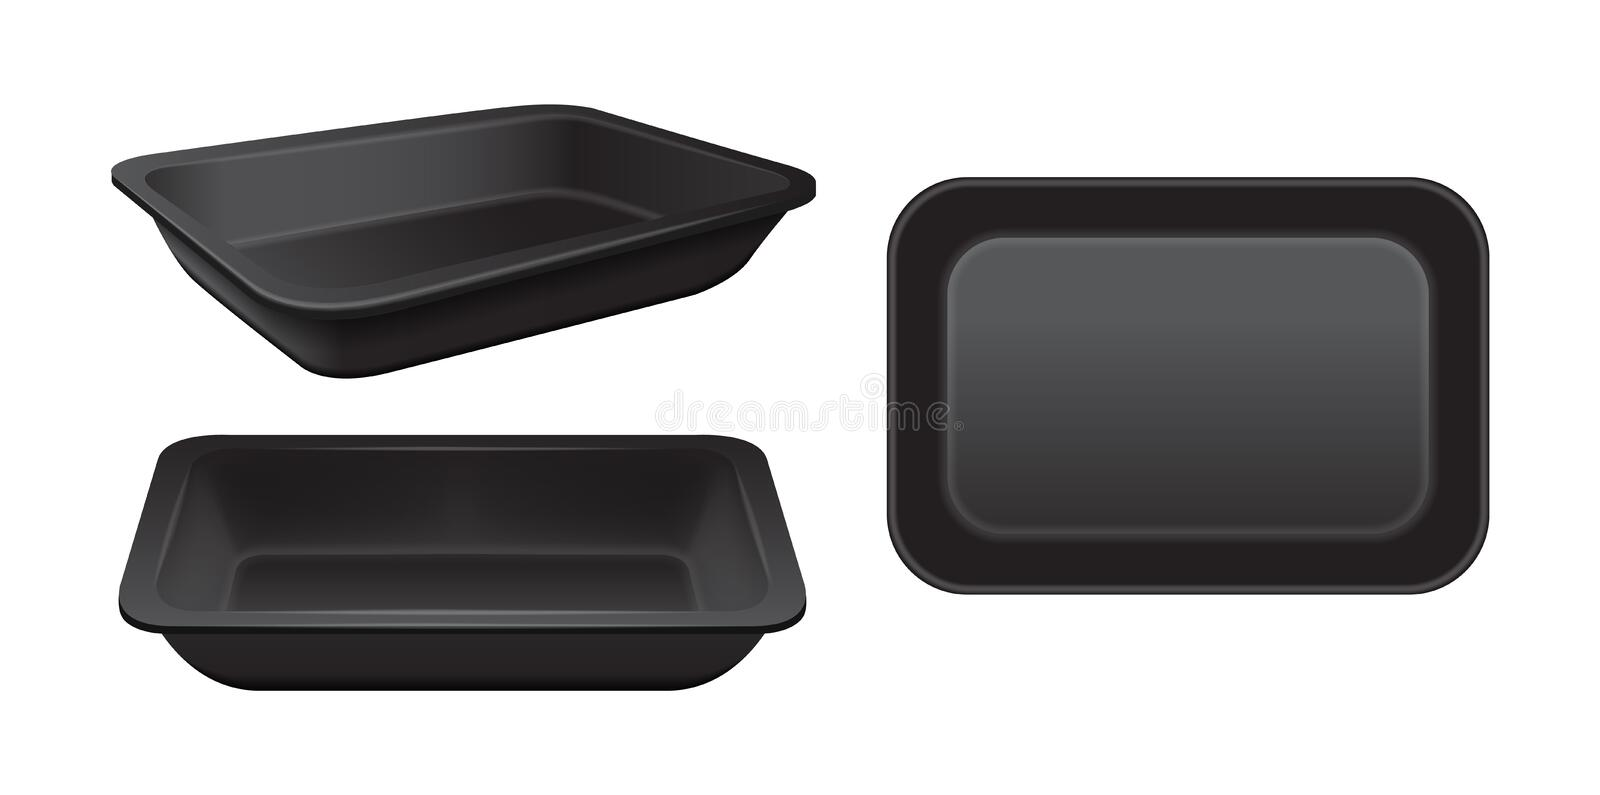 Empty styrofoam food storage. Black food plastic tray, set of foam meal containers vector illustration